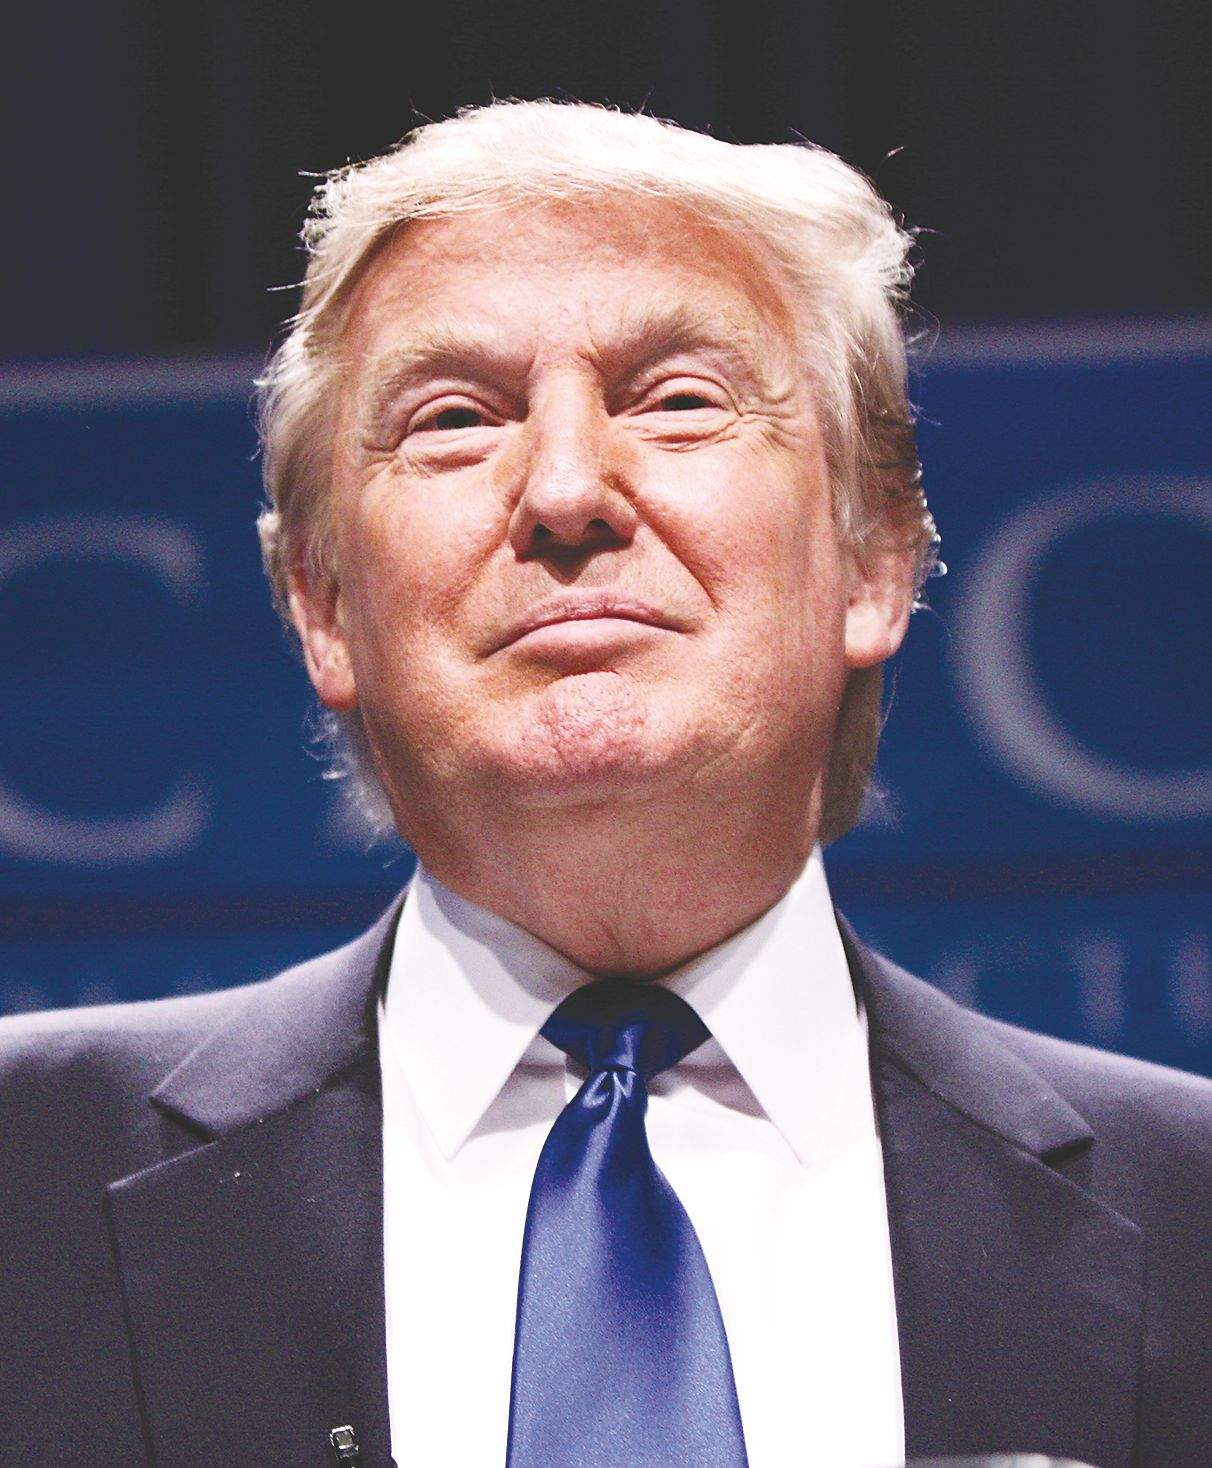 """It's a pretty impressive coup for NJBIZ to think the man running for leader of the free world is only good for the No. 100 spot on our list. Truth is, it's impossible to truly rank Trump. But let's be clear: He is a player here. And he already holds one of the most powerful jobs in the state — deciding who gets a membership at any of his three fabulous golf courses. """"He gets to say, 'OK, you can be a member,'"""" an insider said. """"I mean, the membership committee is Donald."""" And these memberships can bring big business. From what we hear, the clubhouses at these courses do as much business as any board room in the state. Of course, that's just what we hear: Trump hasn't said we can be a member yet."""